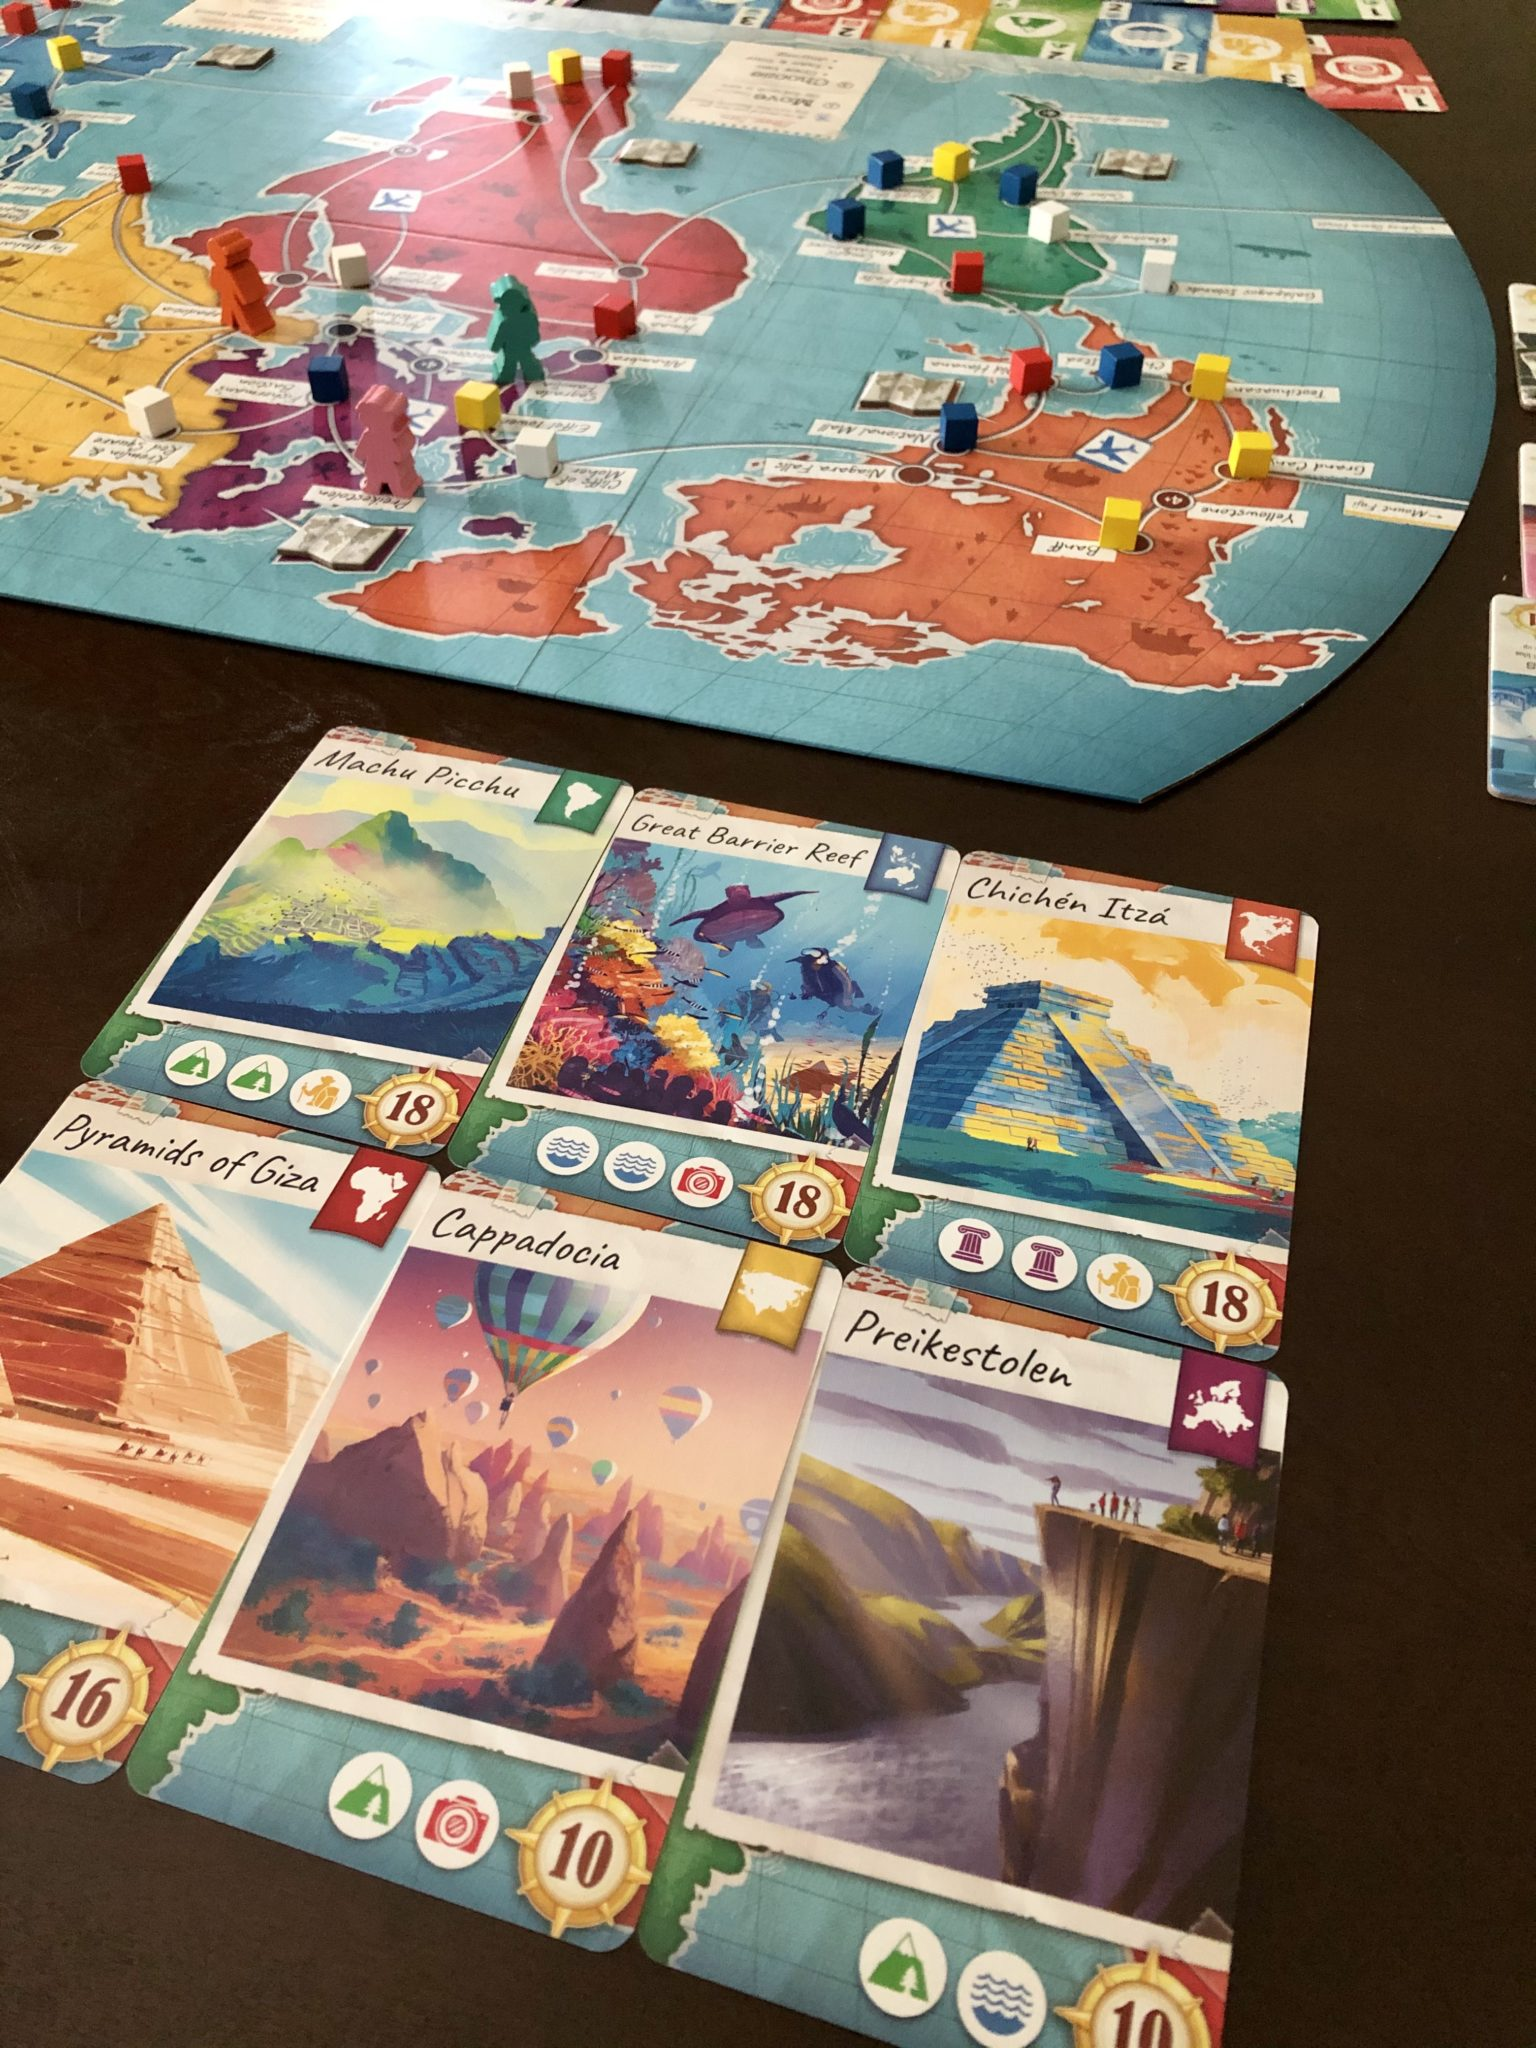 Trekking The World board and sample destination cards